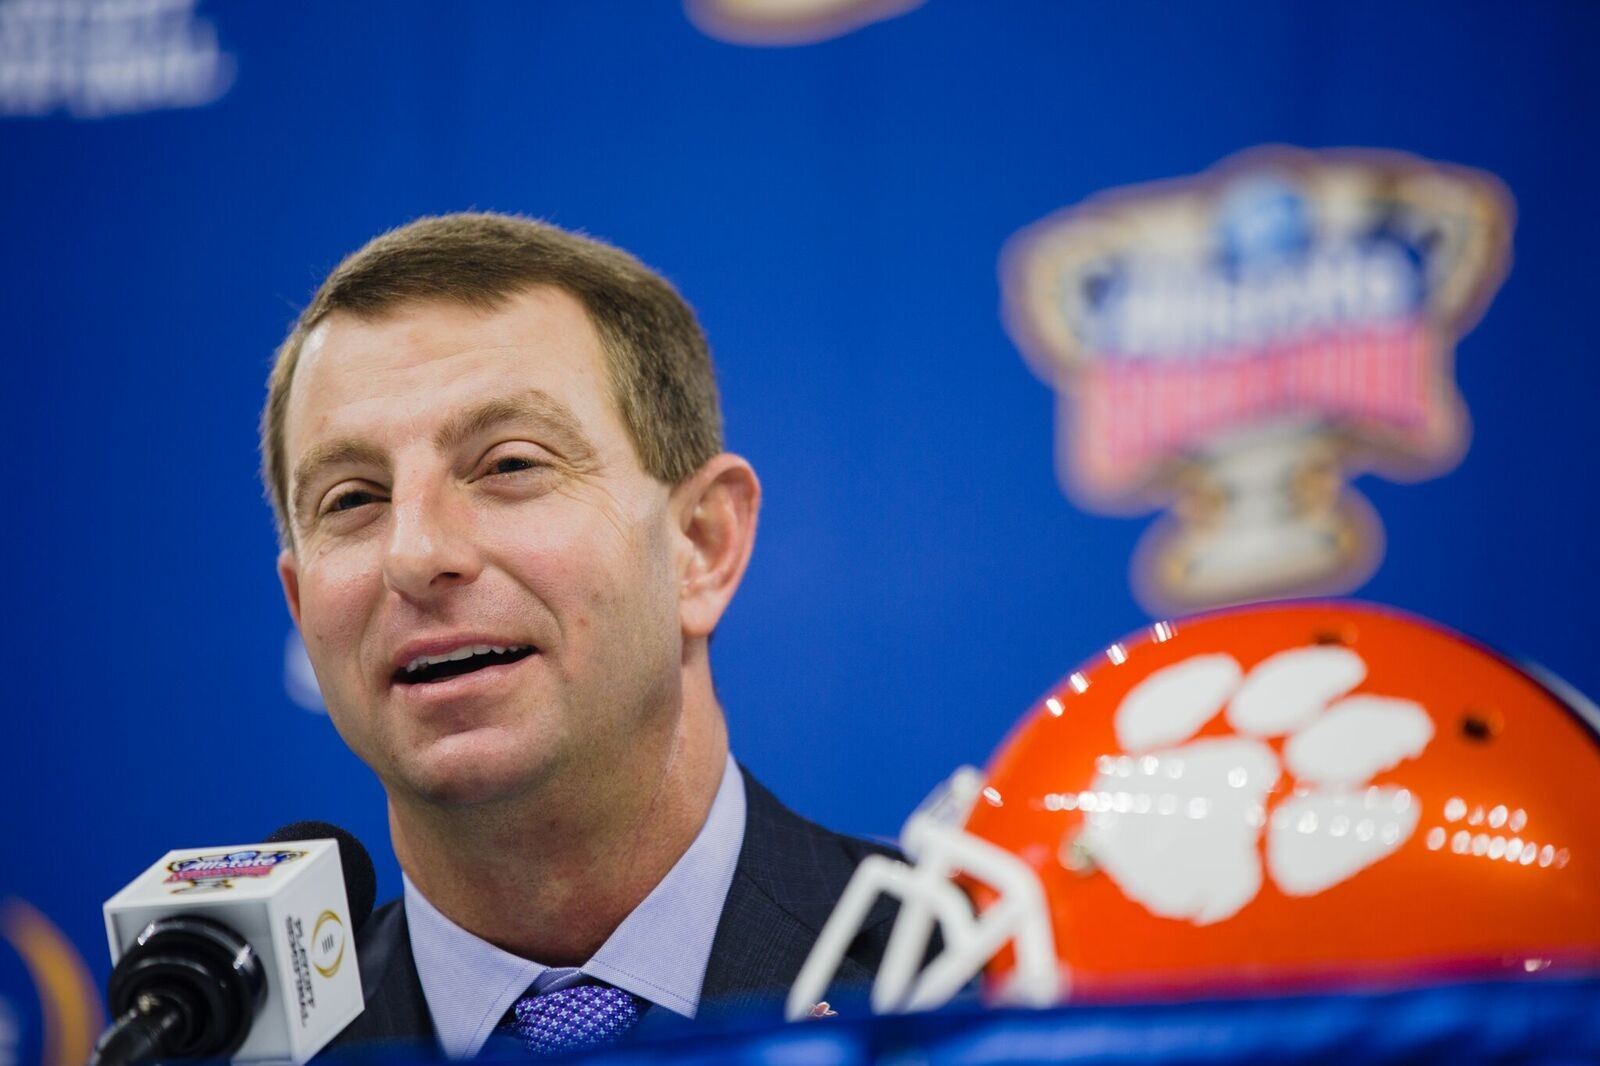 Clemson head coach Dabo Swinney at Saturday's press conference for the College Football Playoff Sugar Bowl against Alabama.